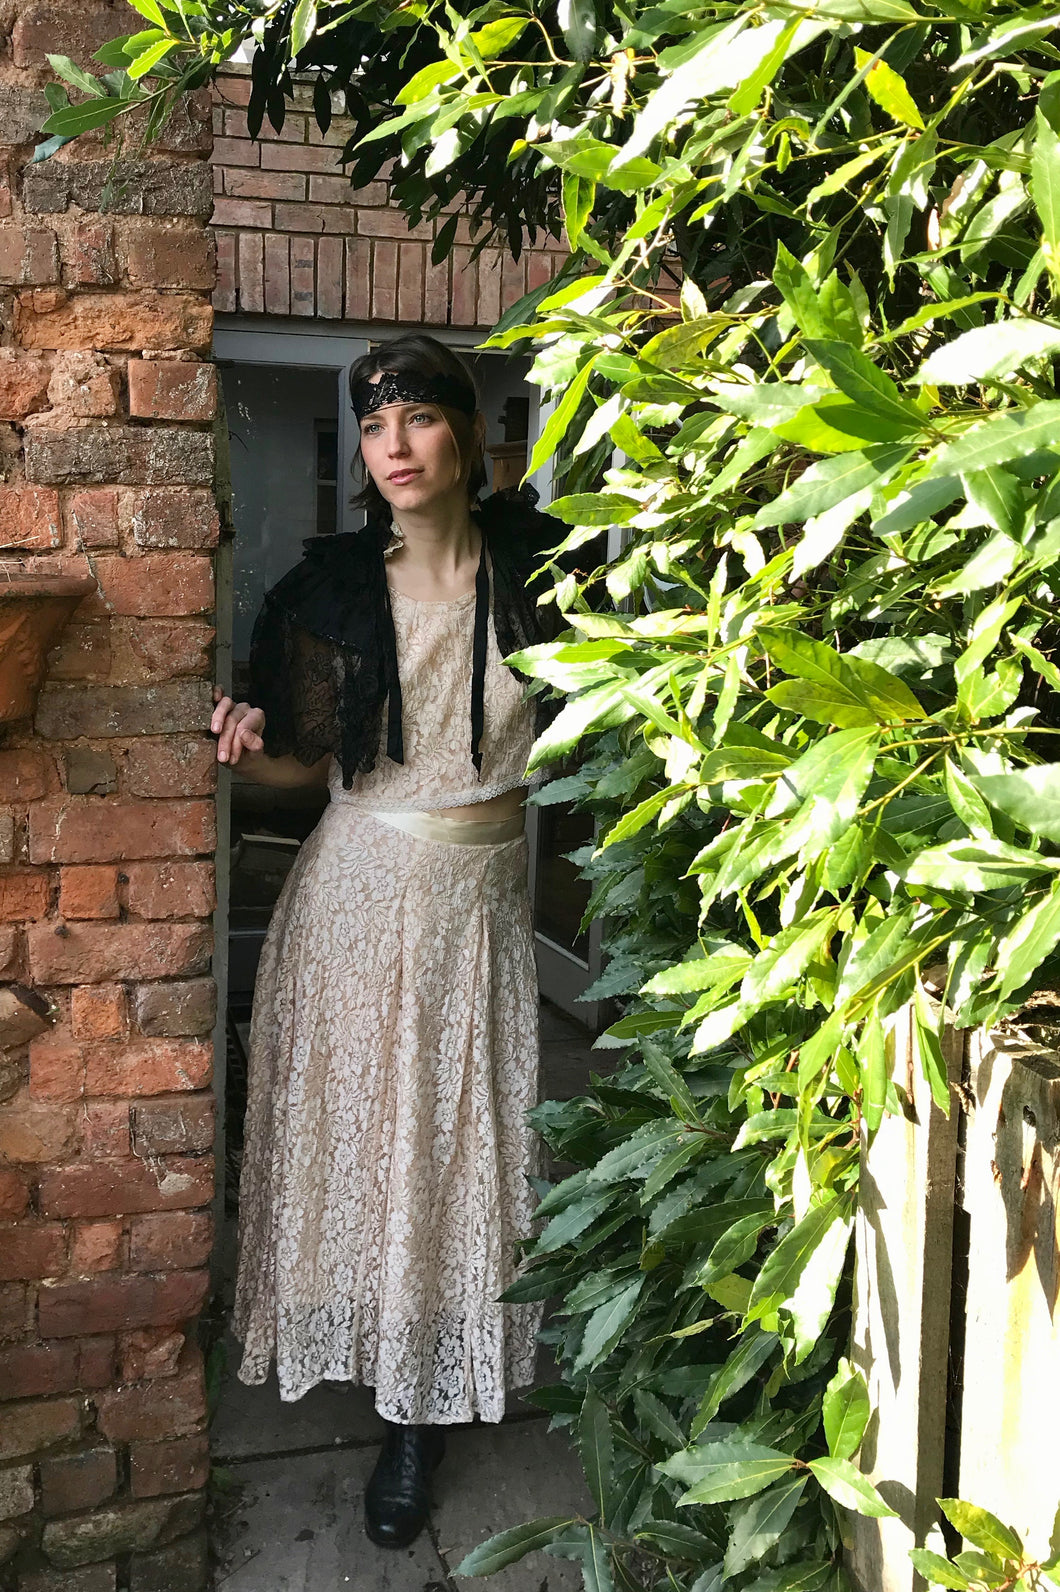 A pretty girl peers through a garden doorway. She is wearing 1940's separates made in shell pink lace. An antique black lace headband and cape complete the Bloomsbury style look.